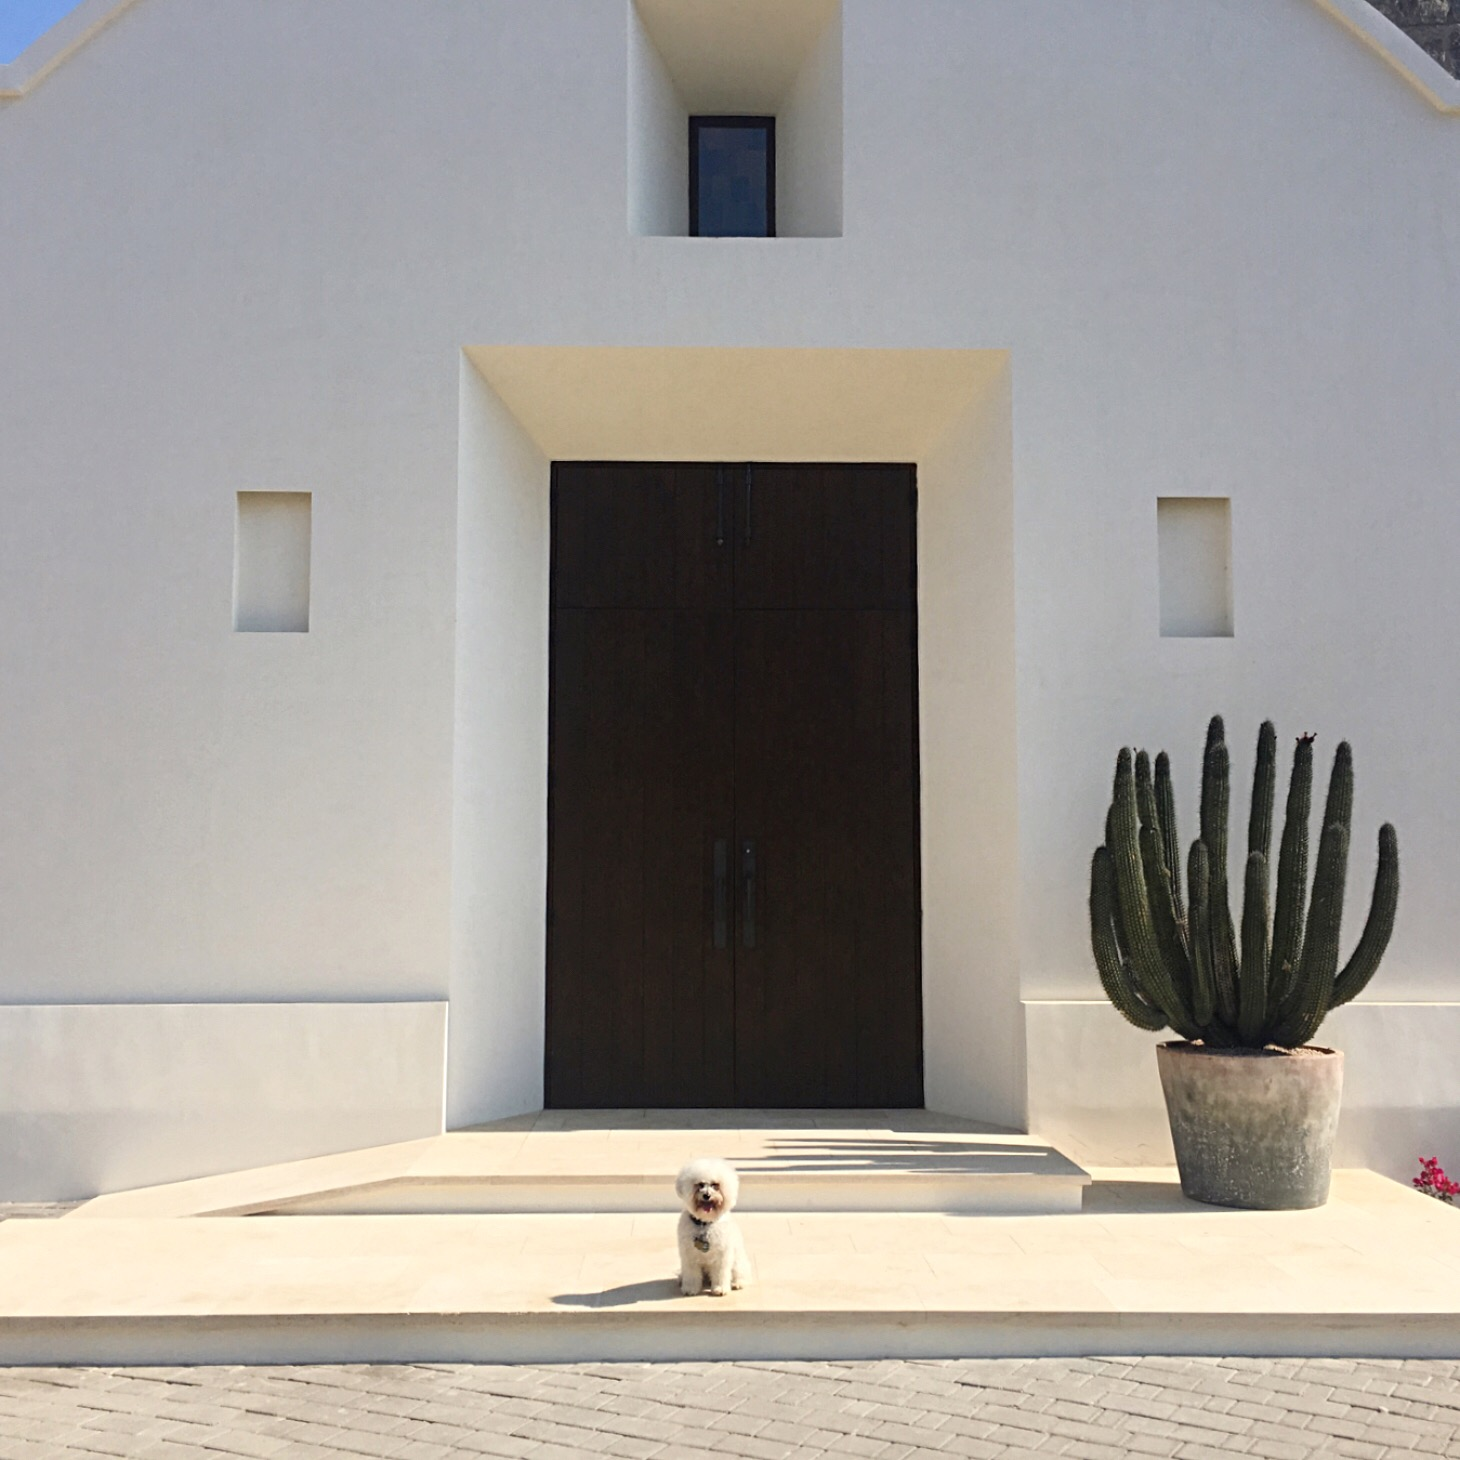 Watson by the cathedral at the Hotel San Cristobal in Todos Santos, BCS Mexico | Watson & Walls